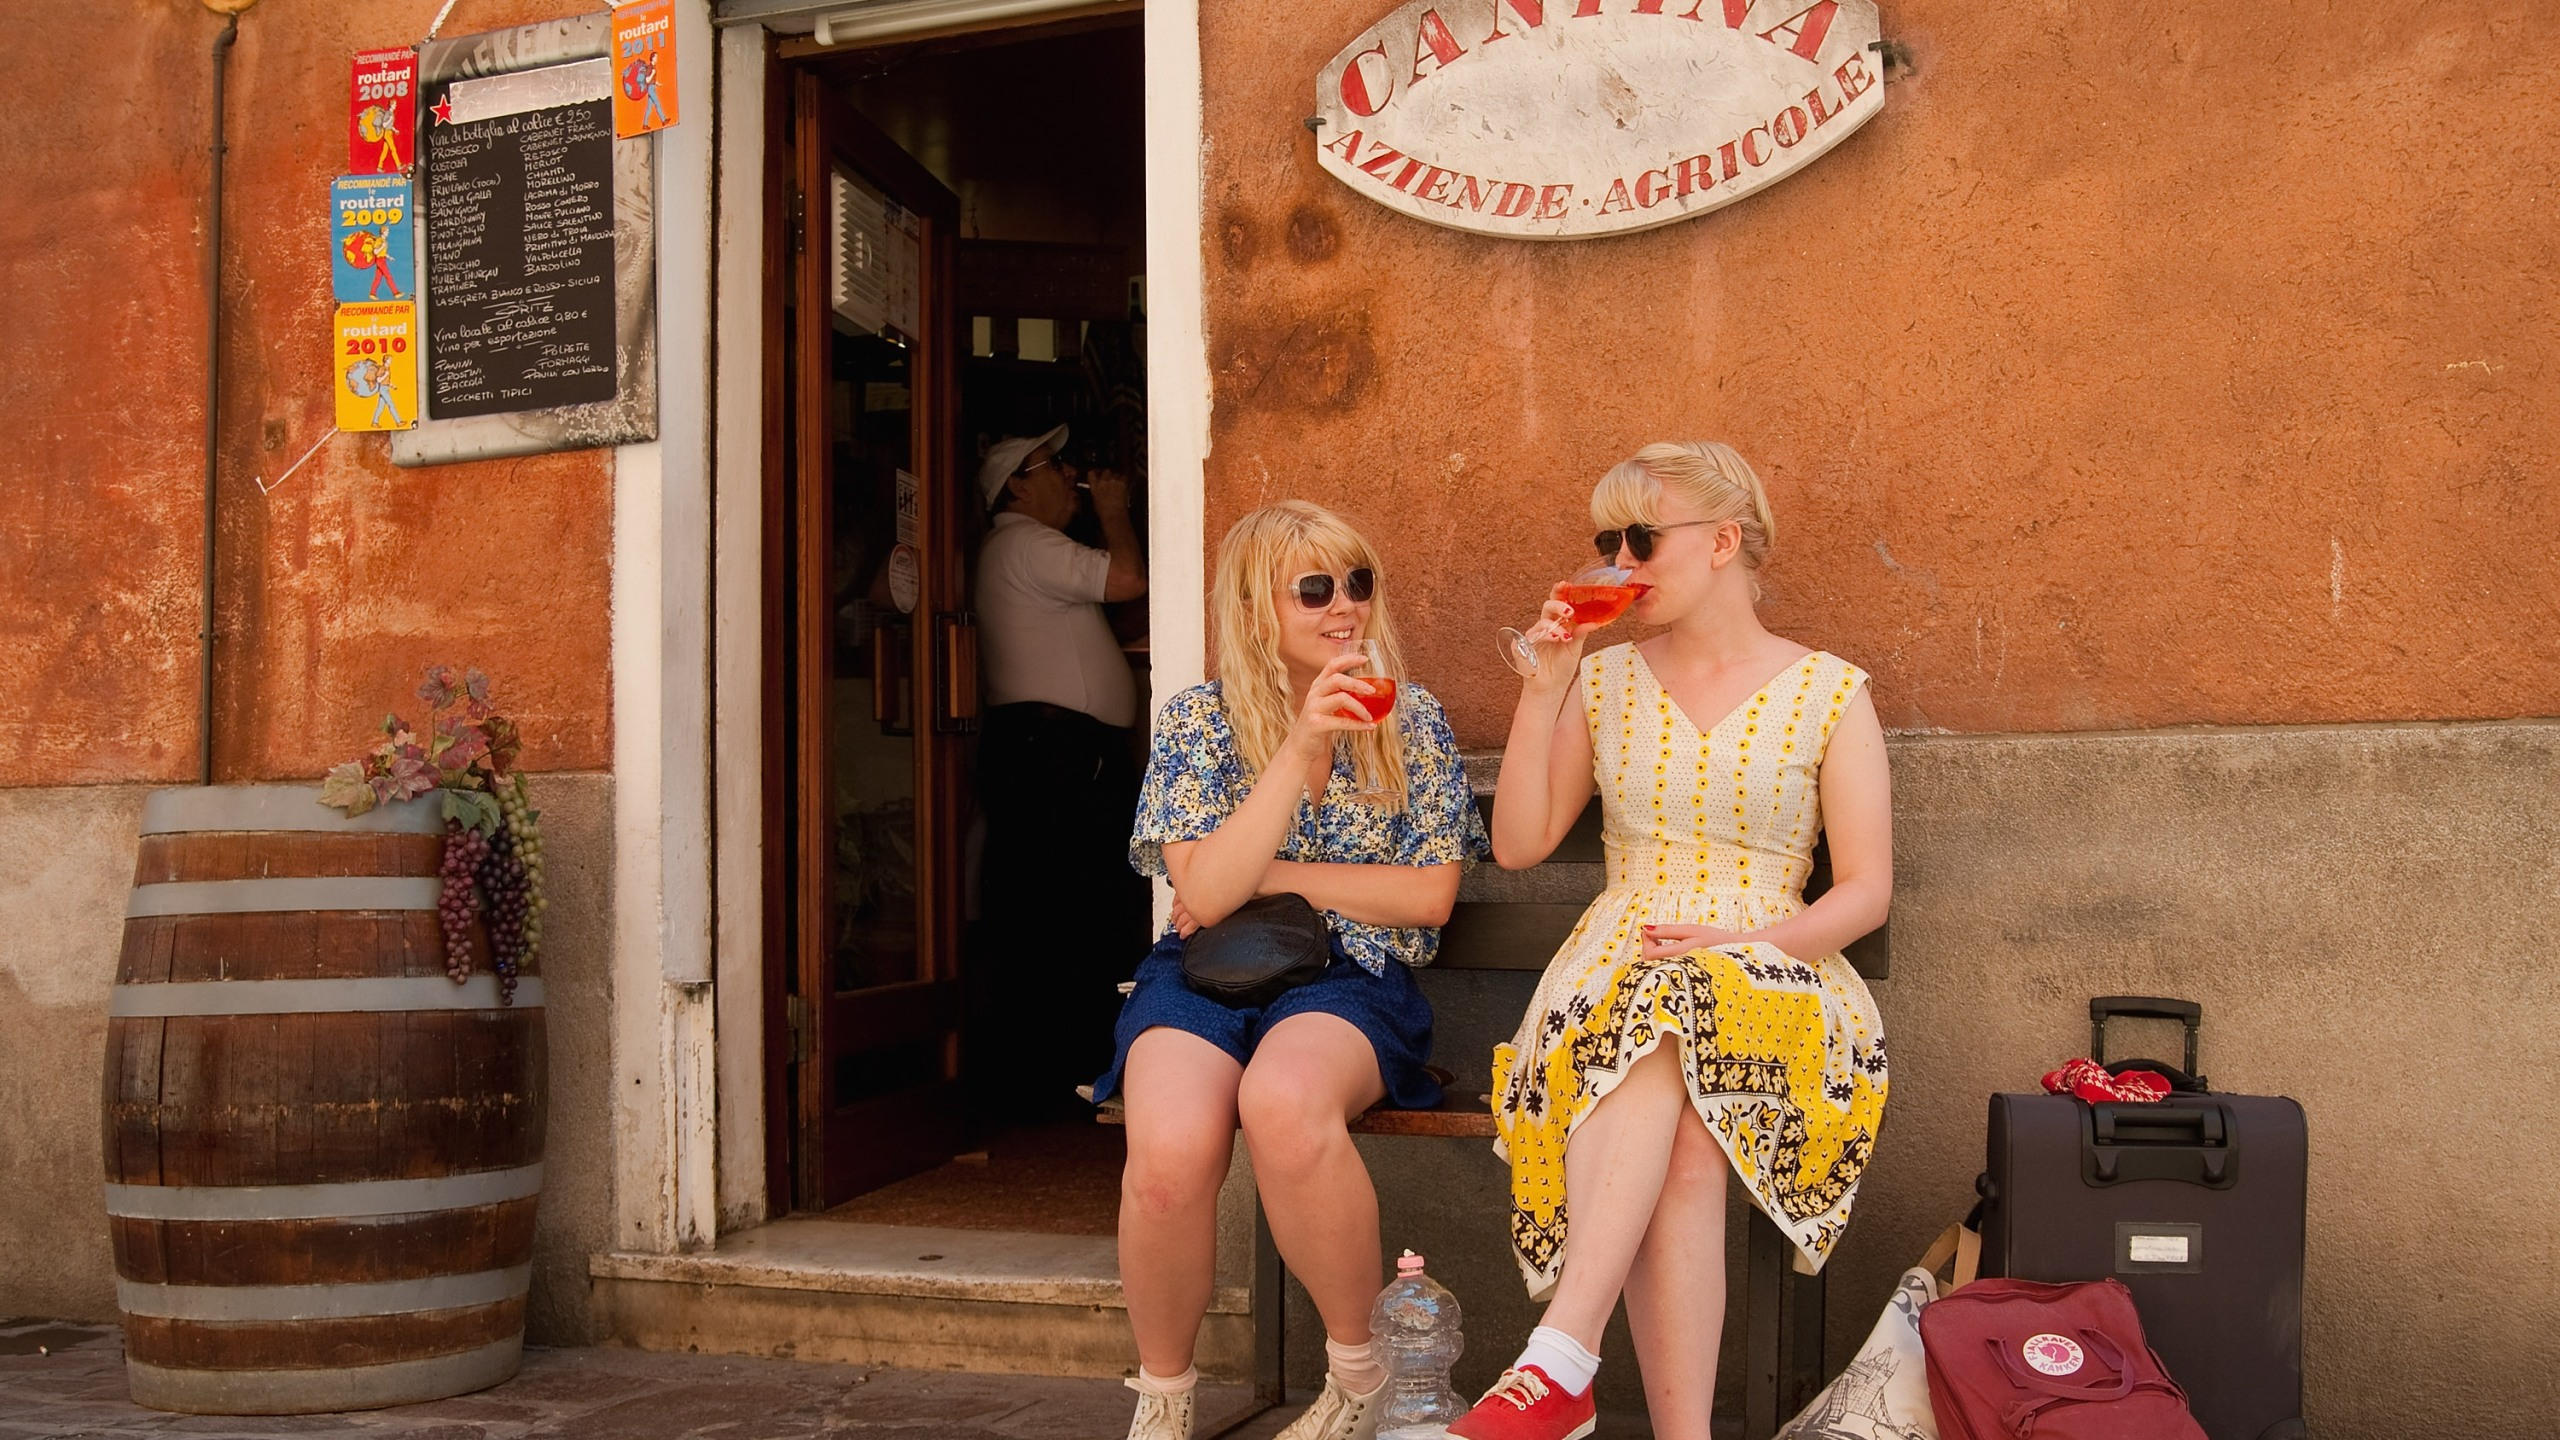 Two tourists enjoy a drink on June 17, 2011 in Venice, Italy. (Credit: Marco Secchi/Getty Images)